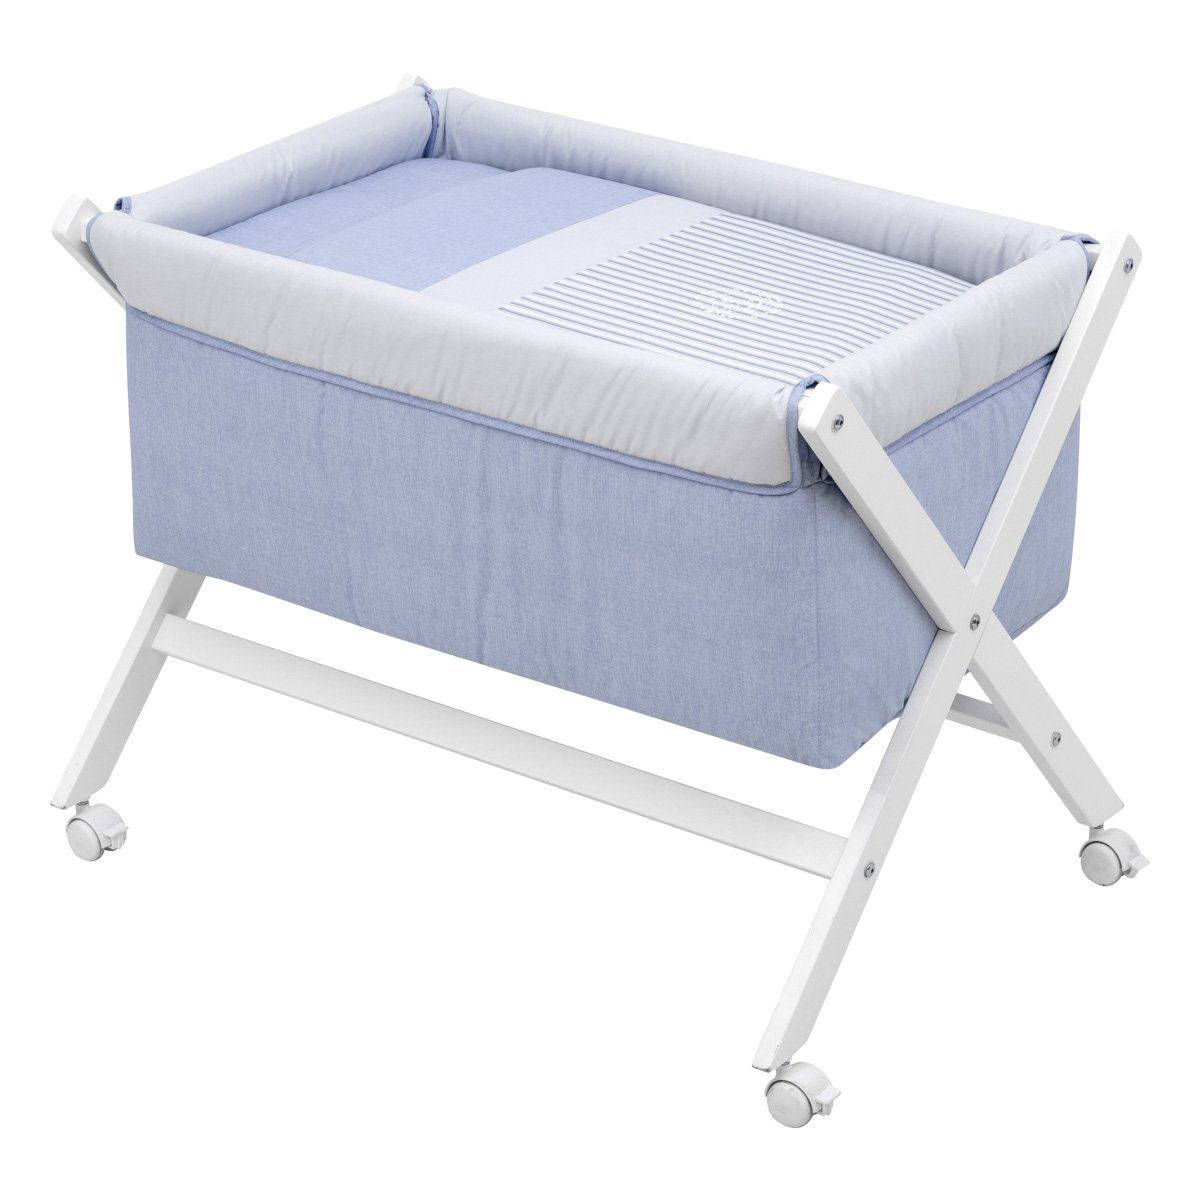 Cambrass X Wood Une Bed - Denim Blue - Small - 55 x 87 x 74 cm